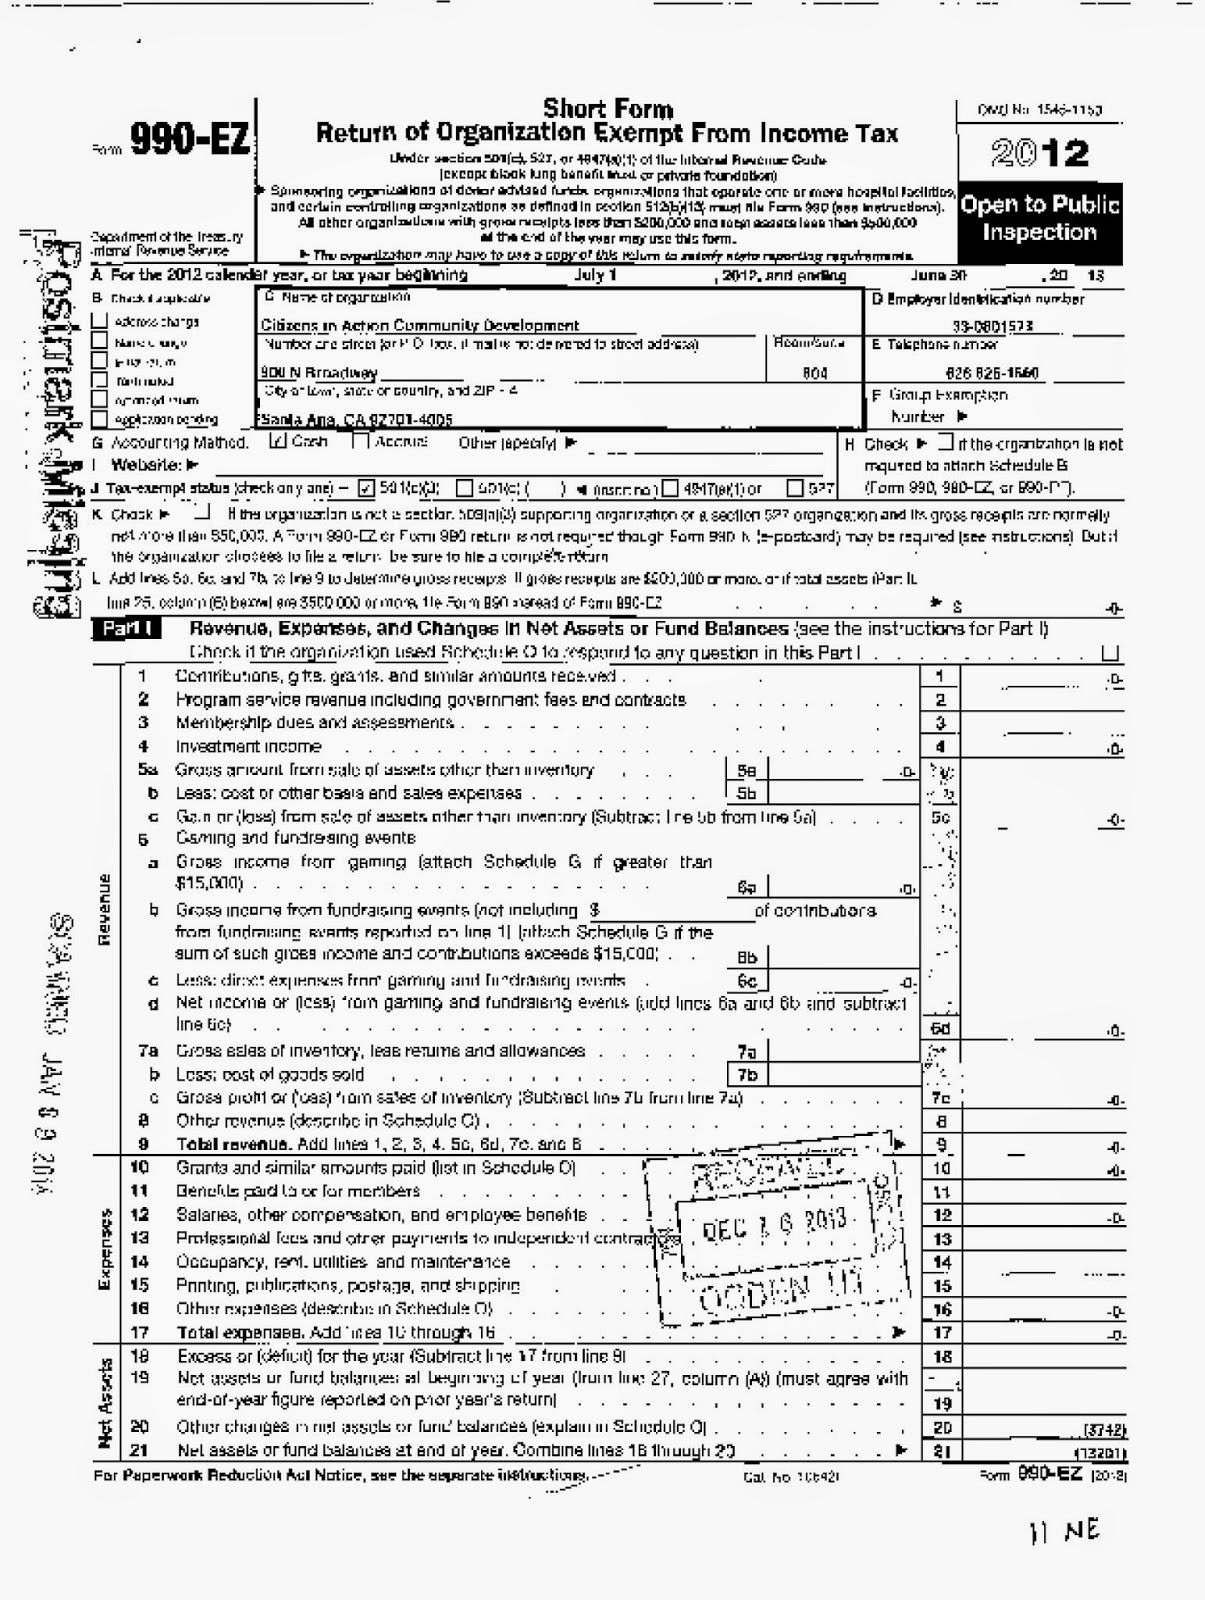 Mayor sams sister city home of los angeles politics mayor sam page 1 of 2012 irs 990 form for the santa ana based citizen in action community development 501 c3 non profit organization falaconquin